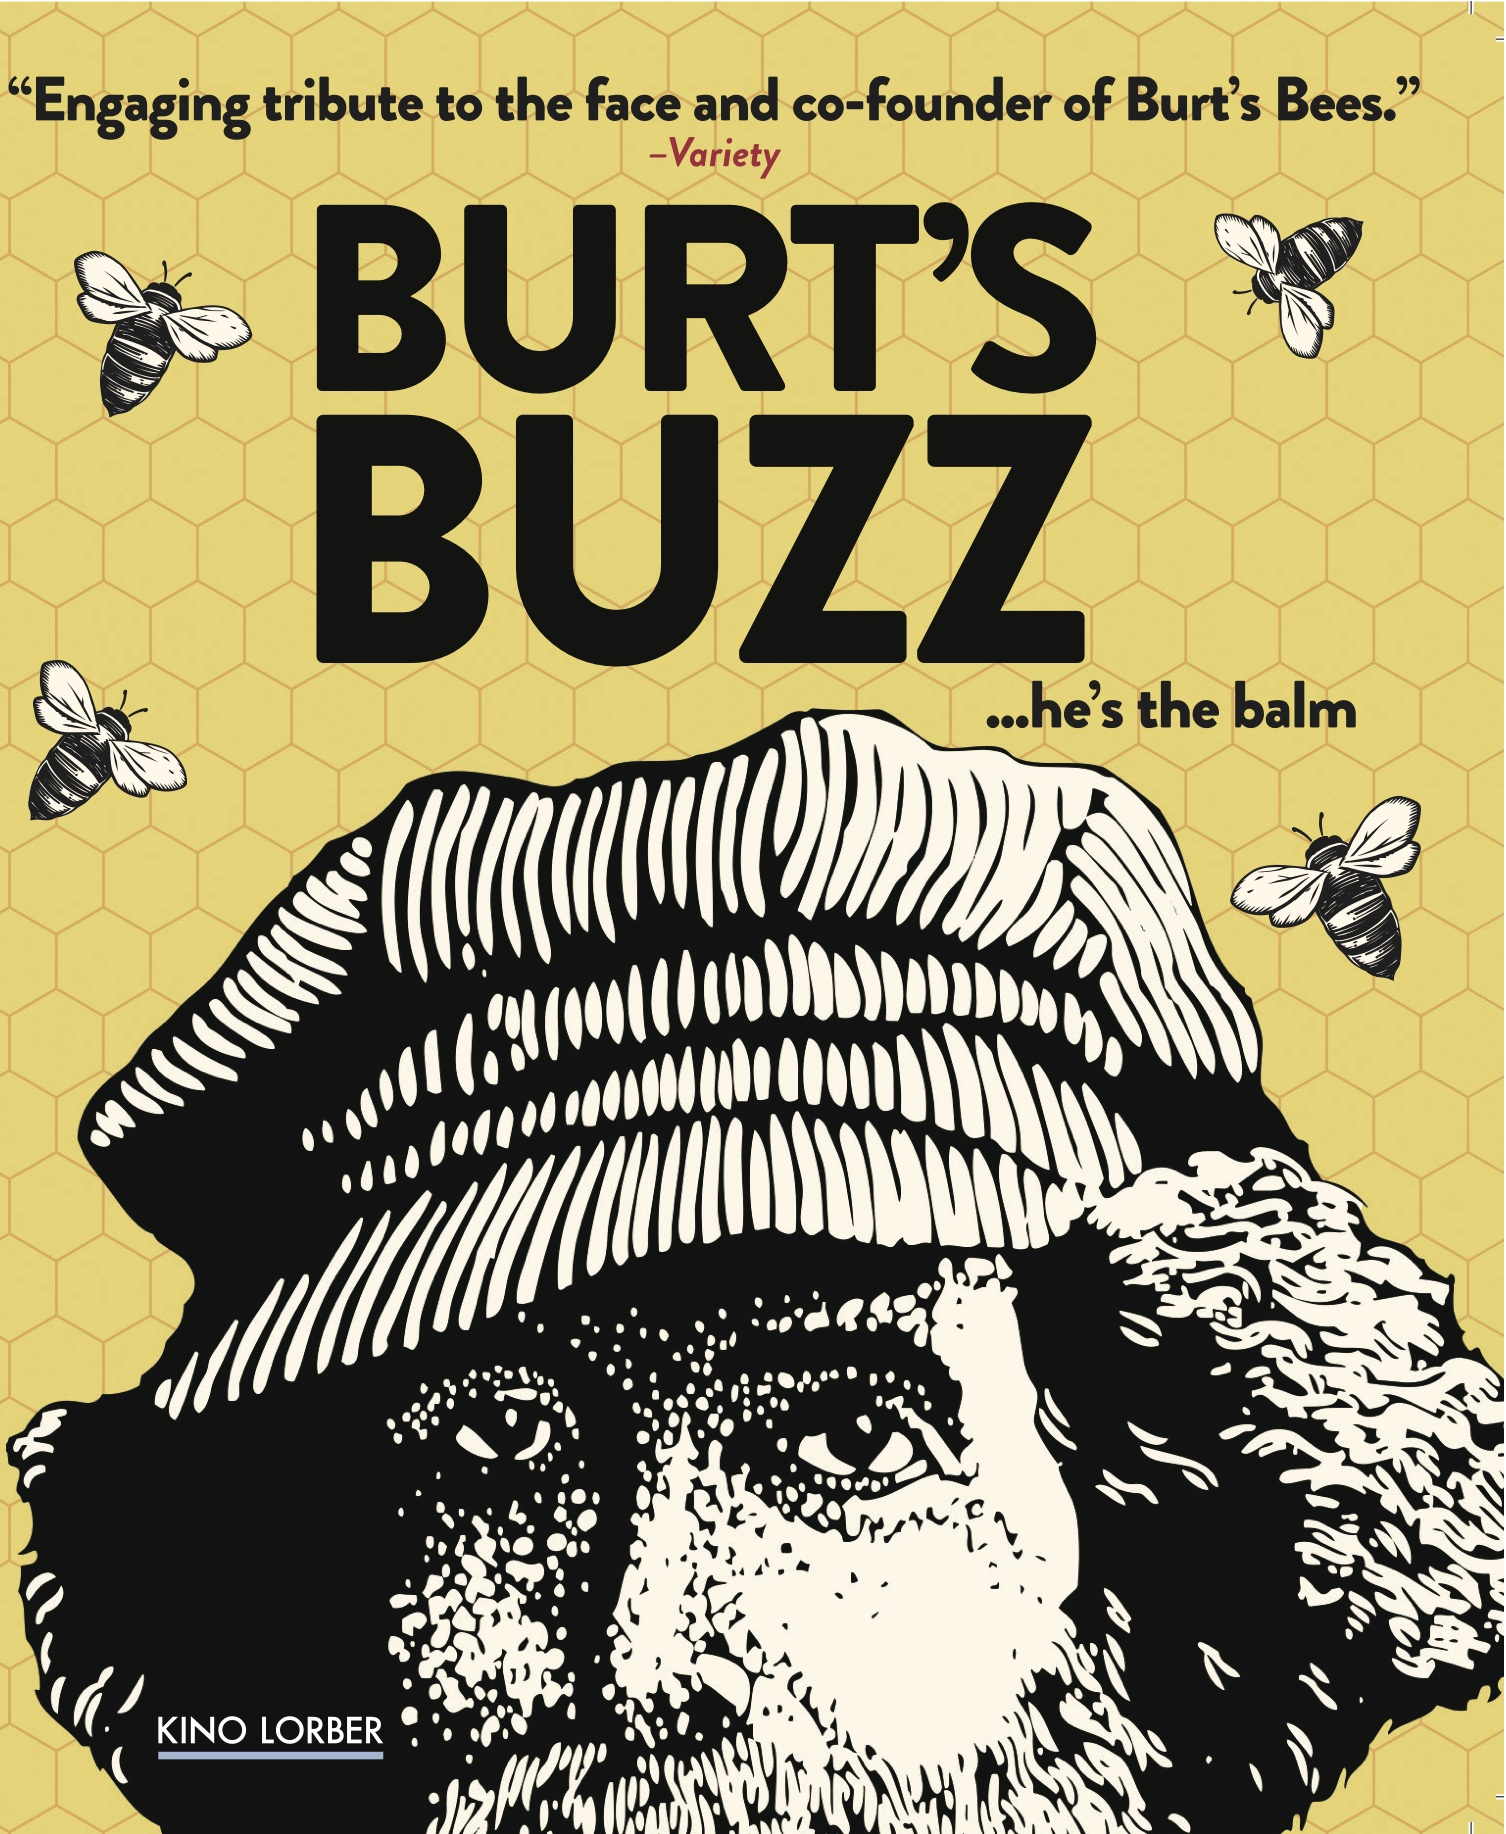 Burt's Buzz - Kino Lorber Theatrical